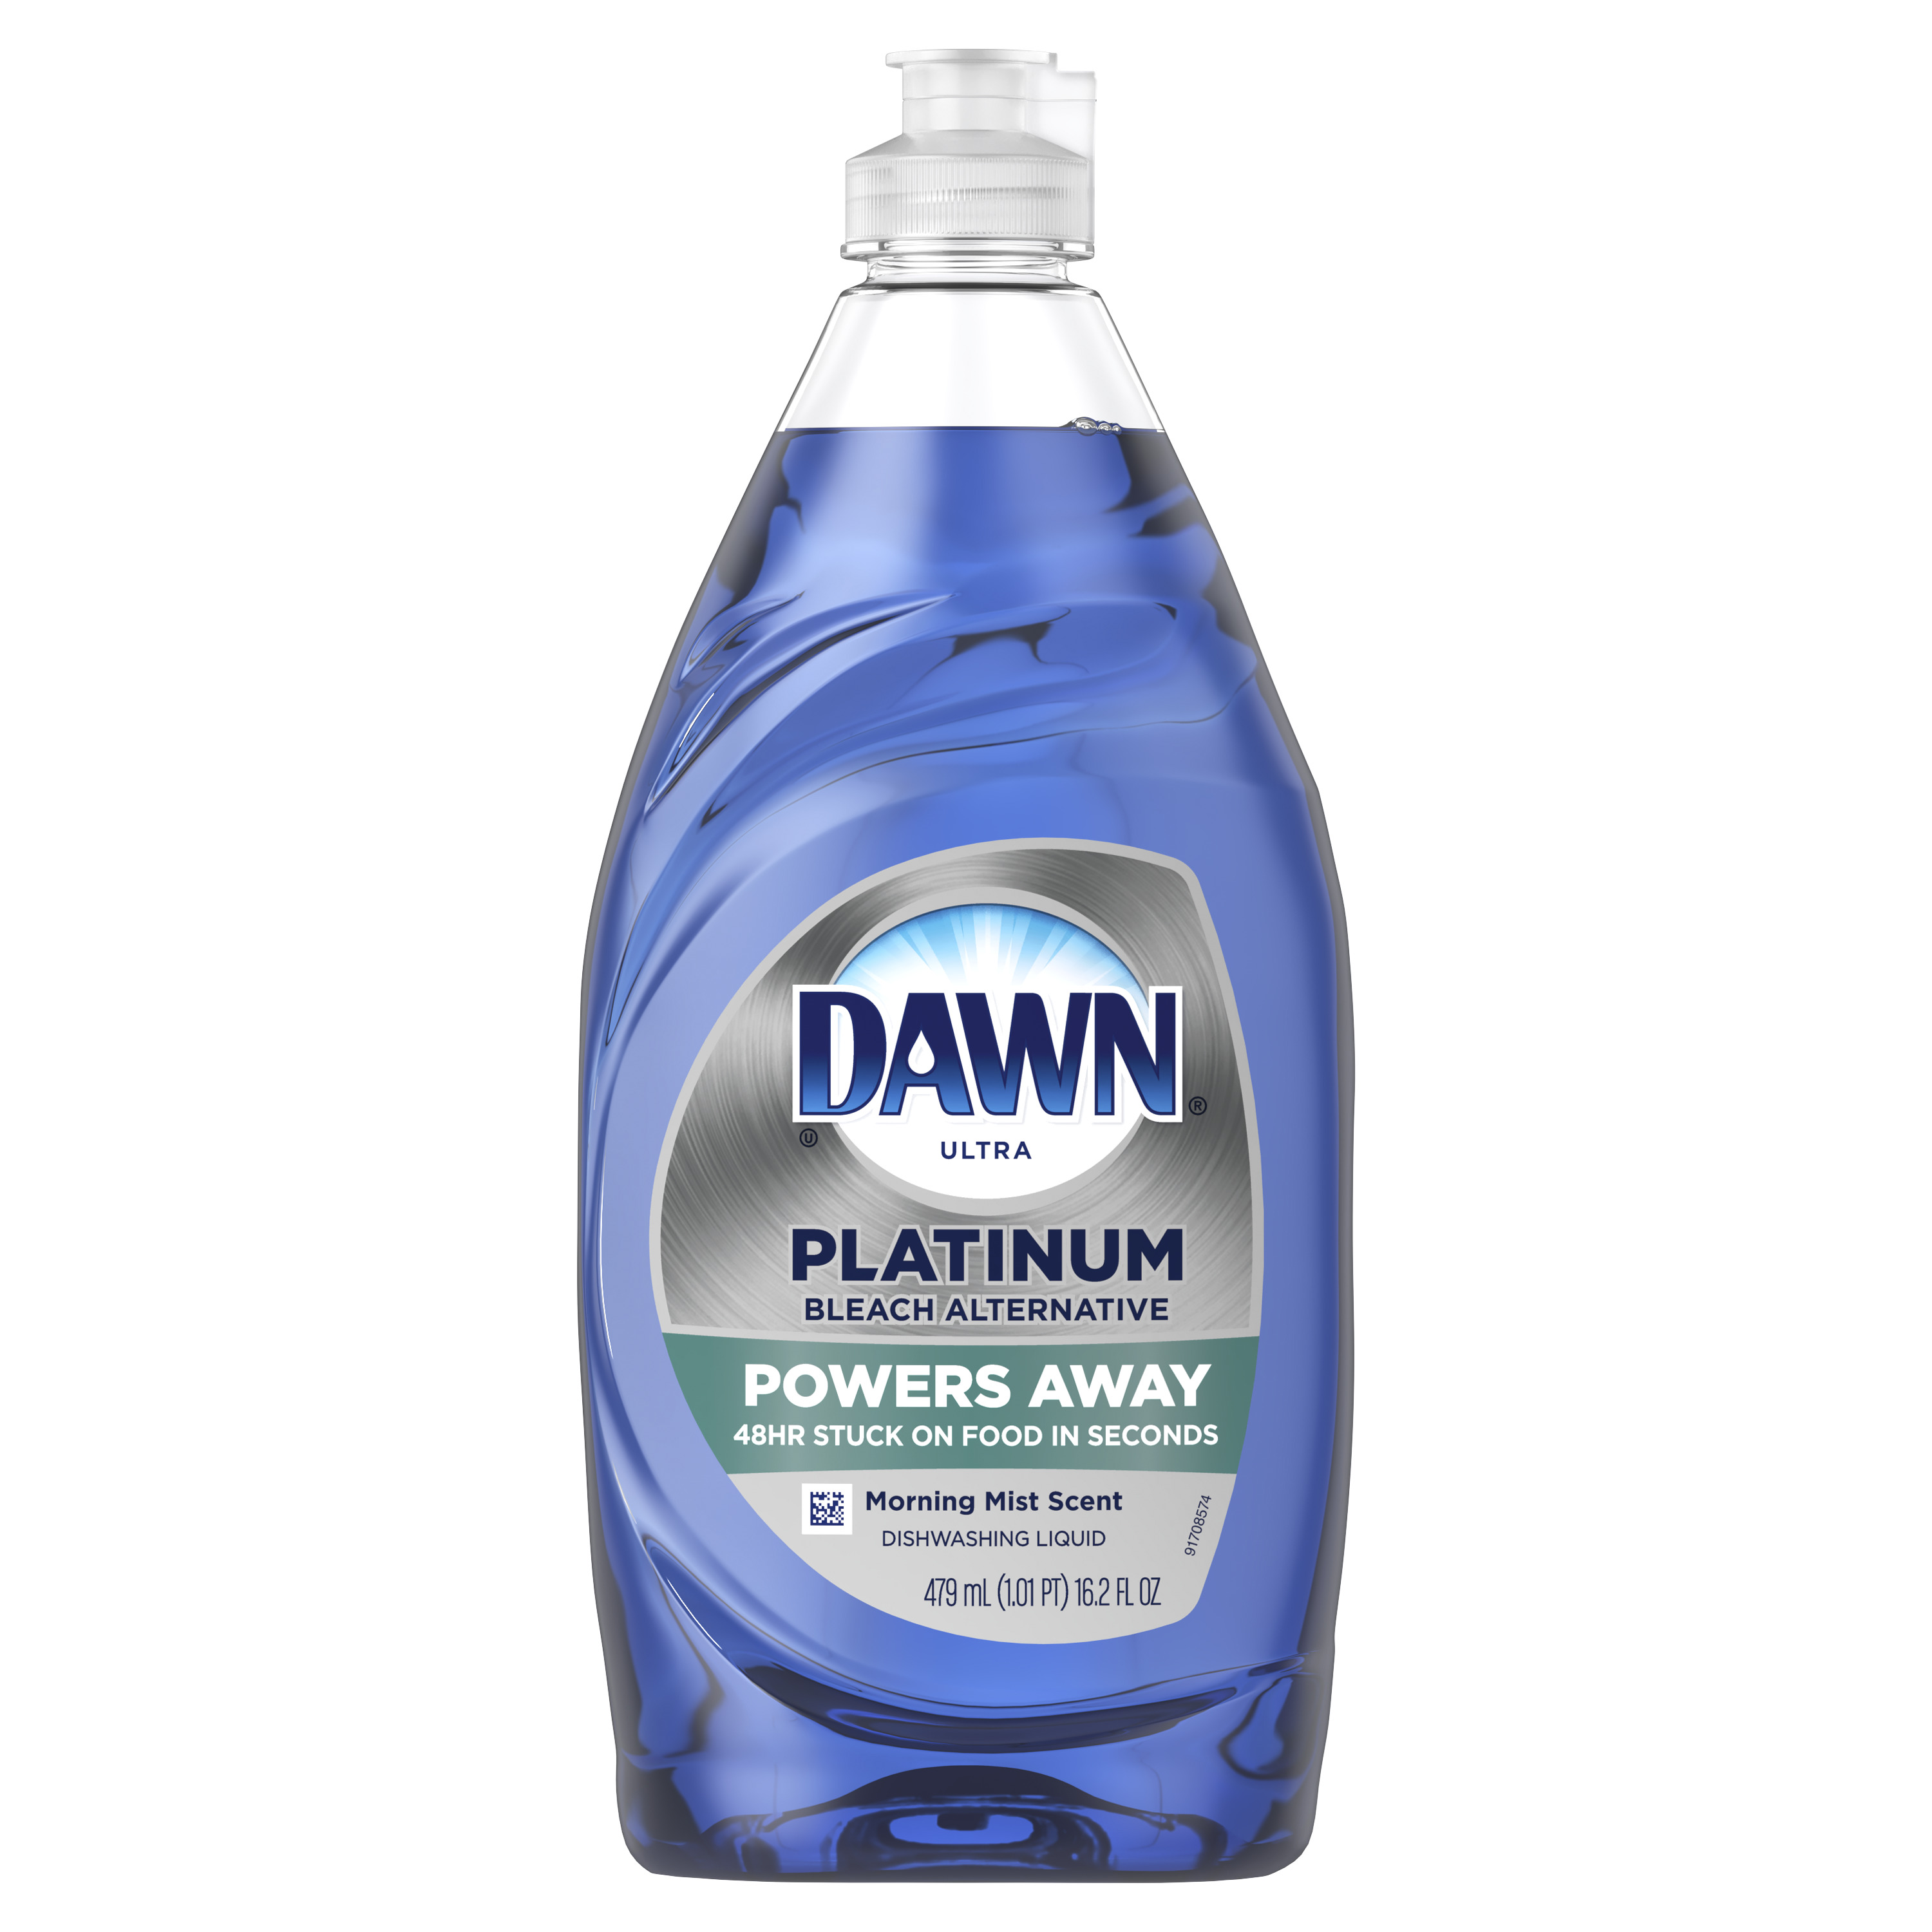 Dawn Platinum, Bleach Alternative, Dishwashing Liquid Dish Soap, Morning Mist, 16.2 fl oz